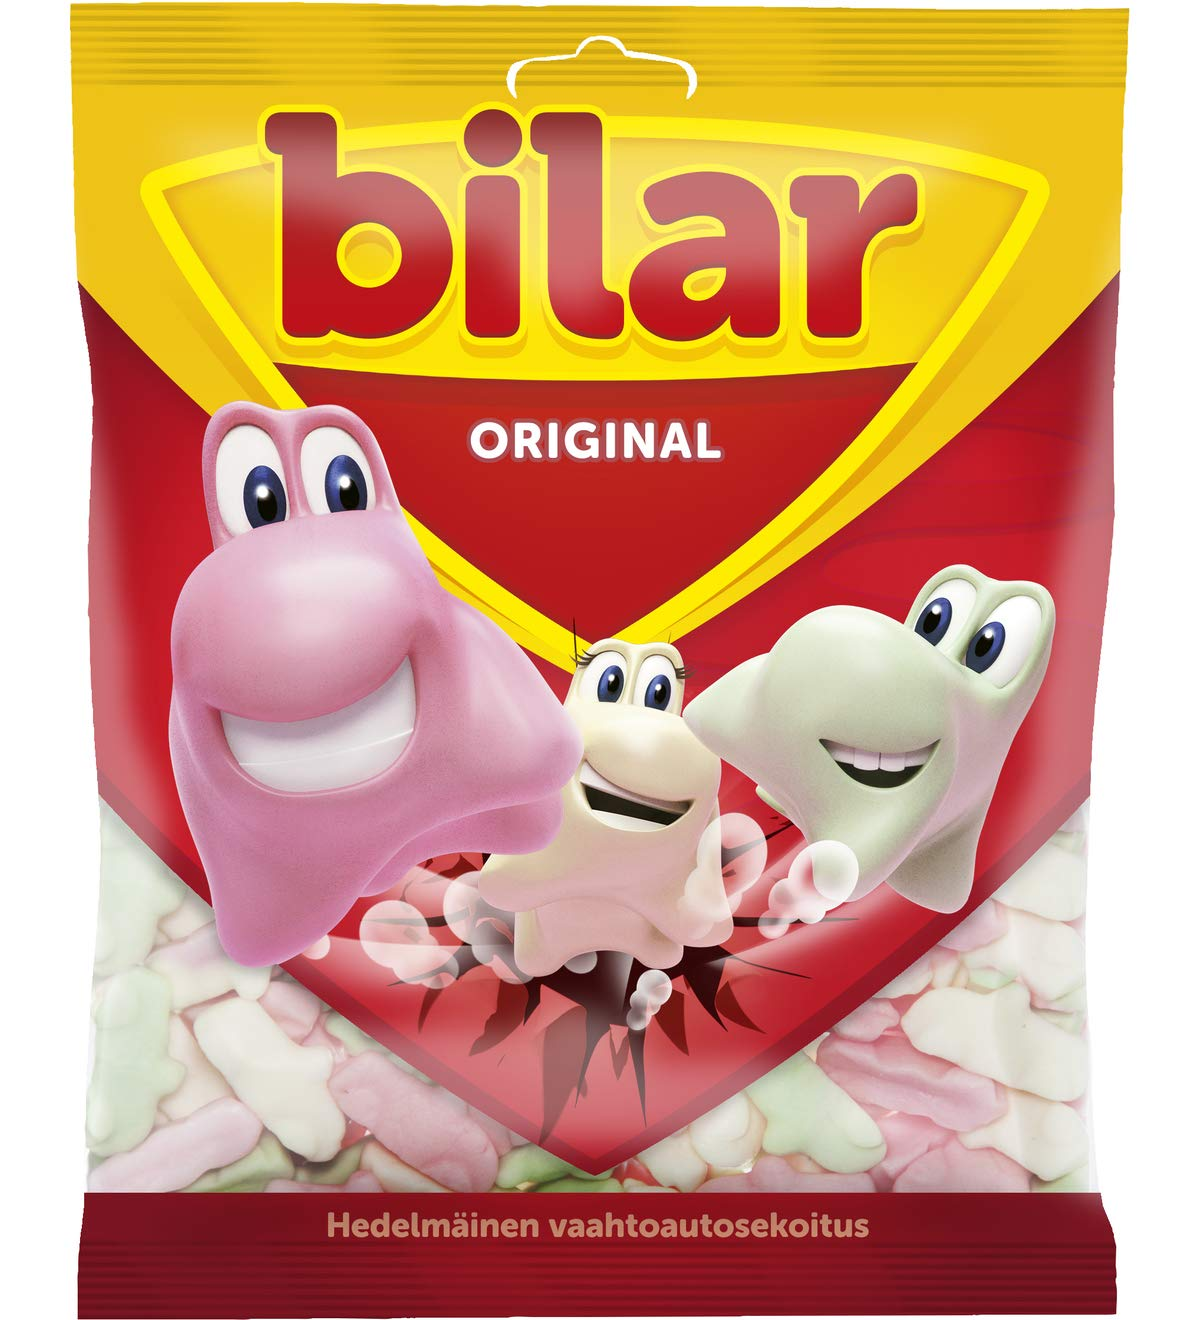 18 Bags x 125g of Ahlgrens Bilar Original - Swedish - Chewy Marshmallow Cars - Candies - Sweets - New Design! by Ahlgrens